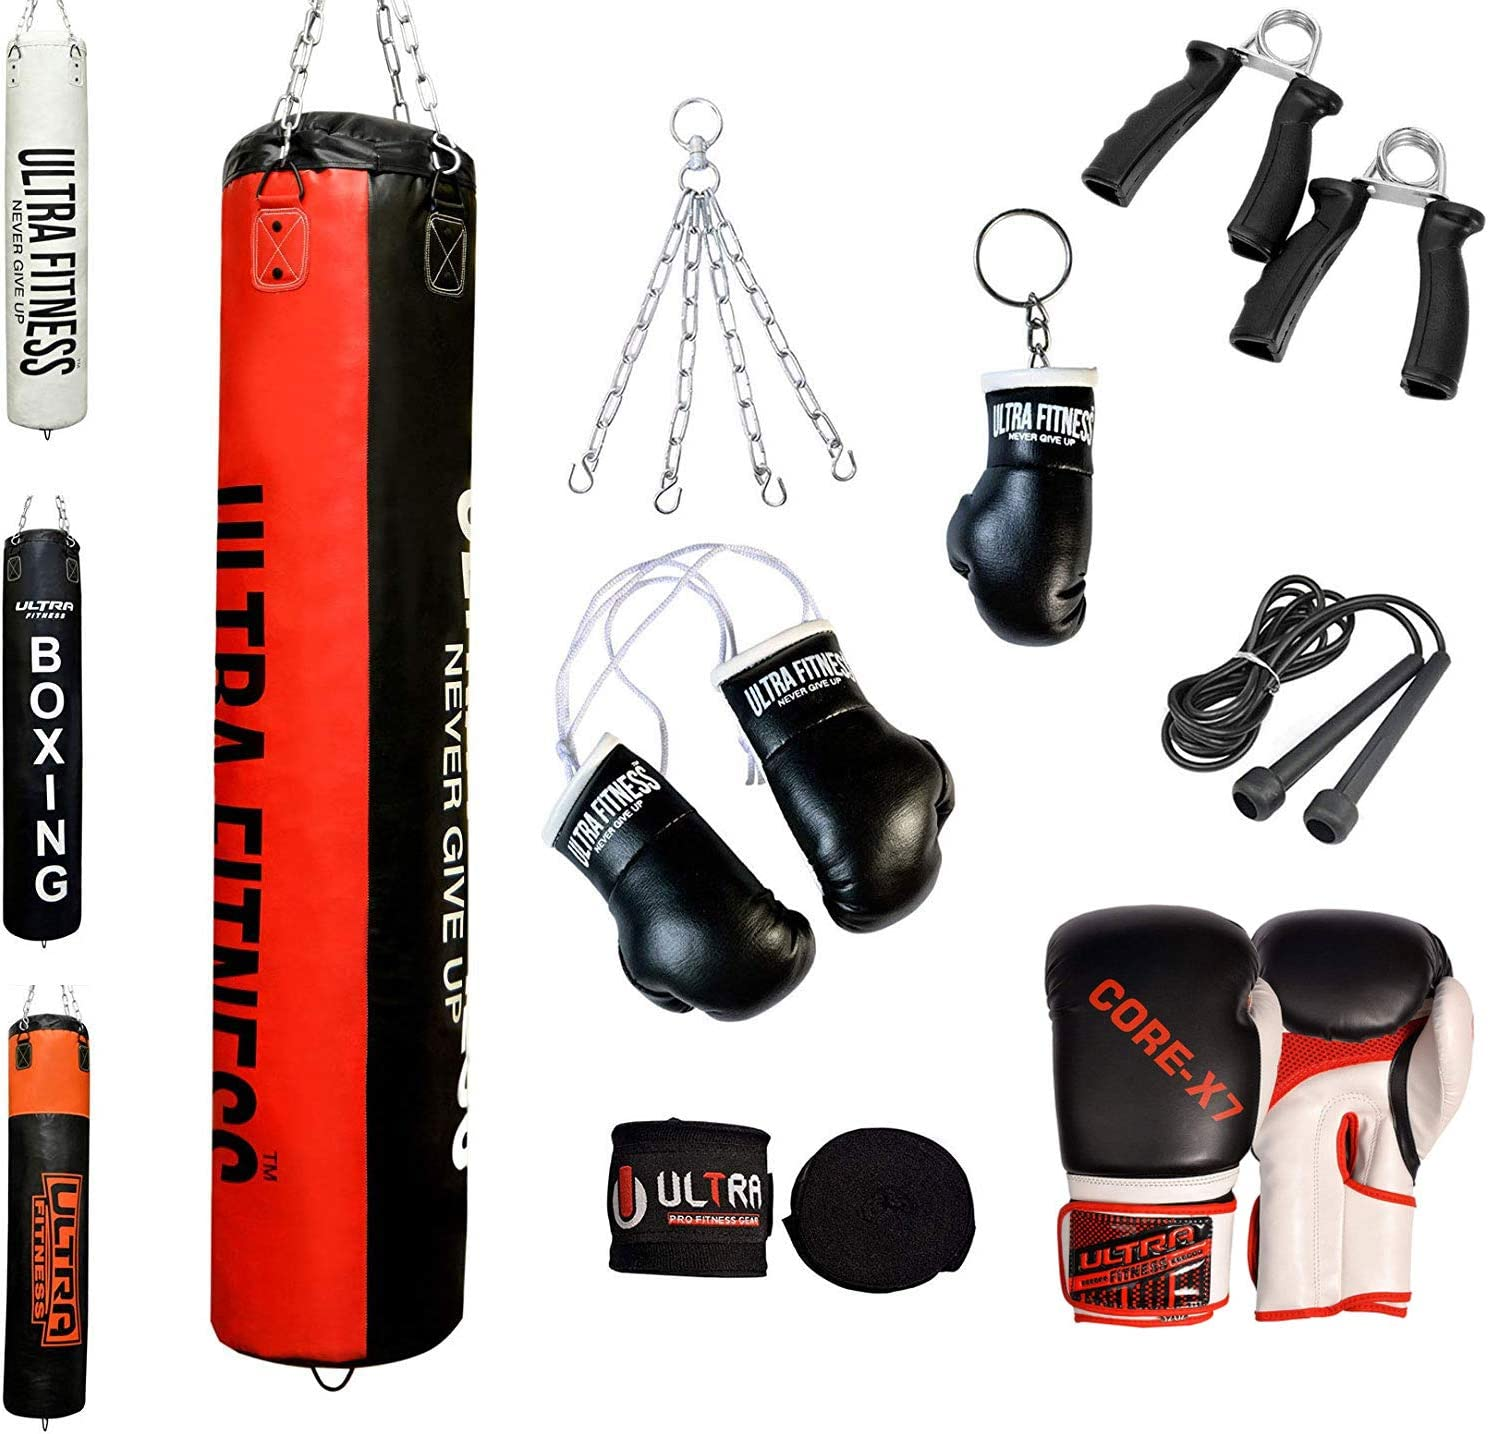 ULTRA FITNESS Boxing Punch Bag set of 12 pieces Kick Boxing MMA Heavy Punching Muay Thai Training